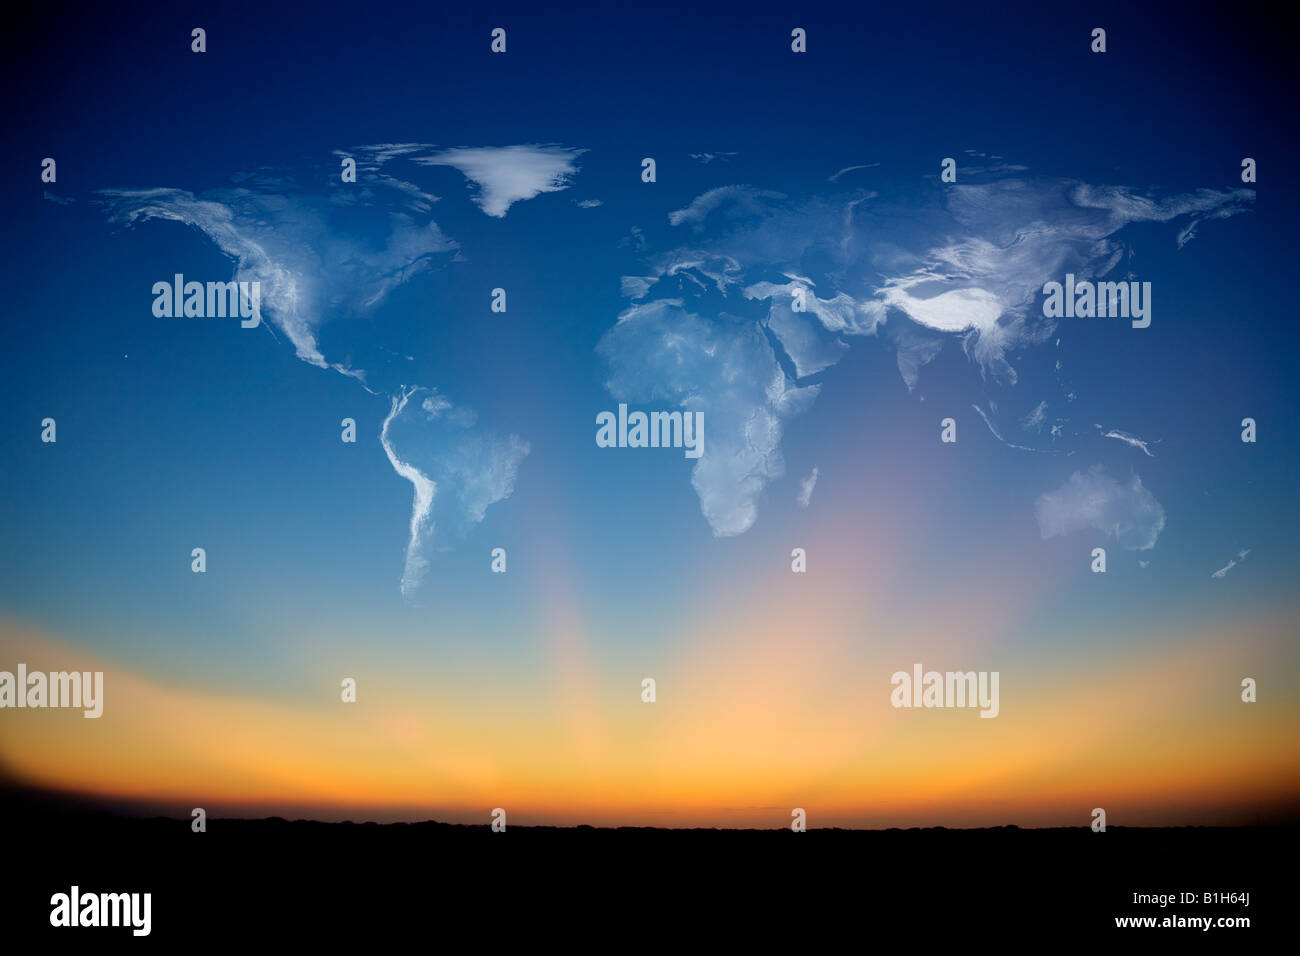 Smoke atlas in the sky - Stock Image